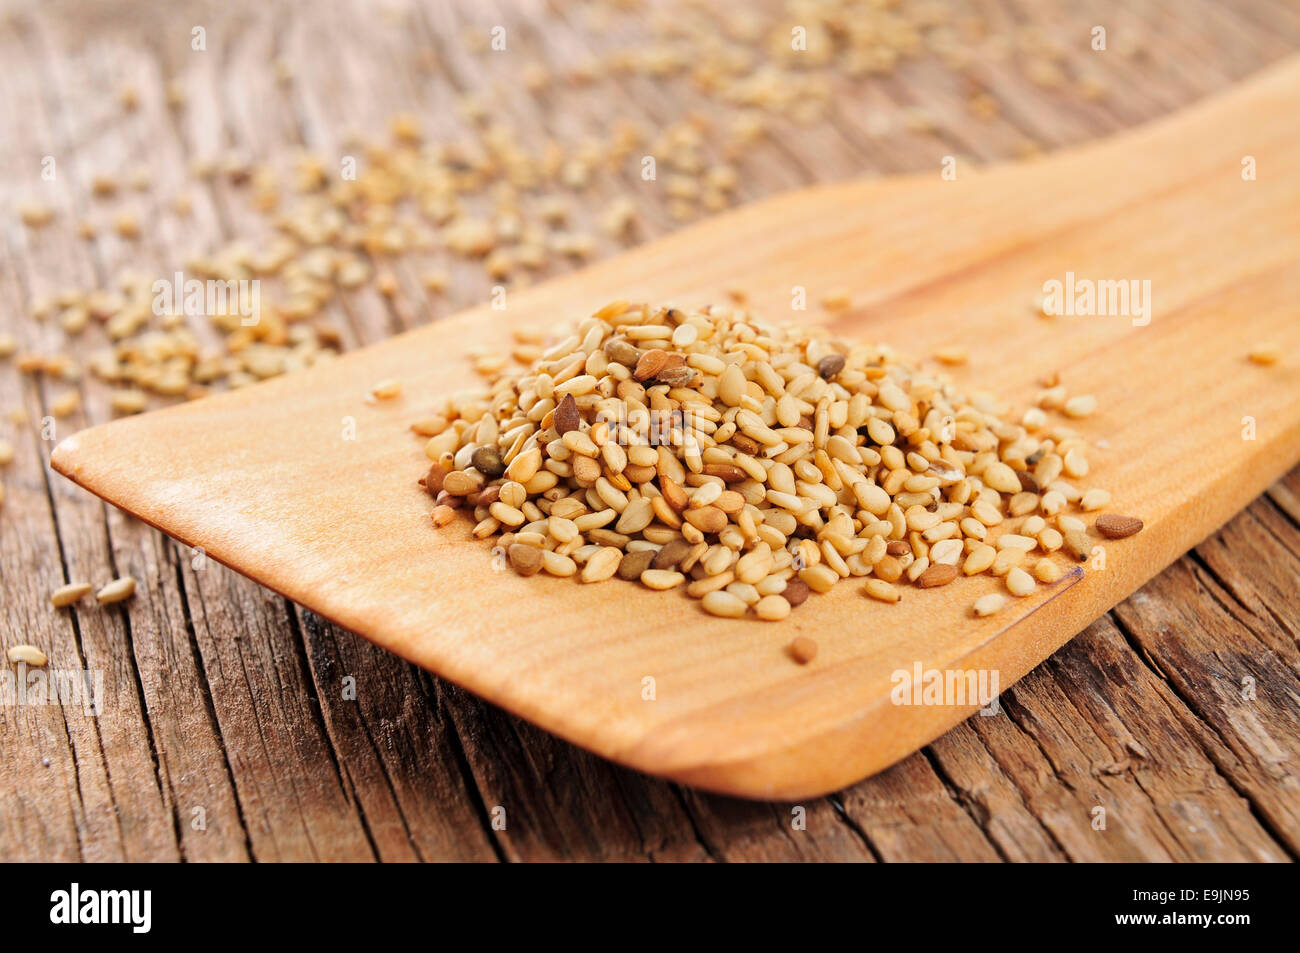 sesame seeds in a wooden spatula on a rustic wooden table - Stock Image